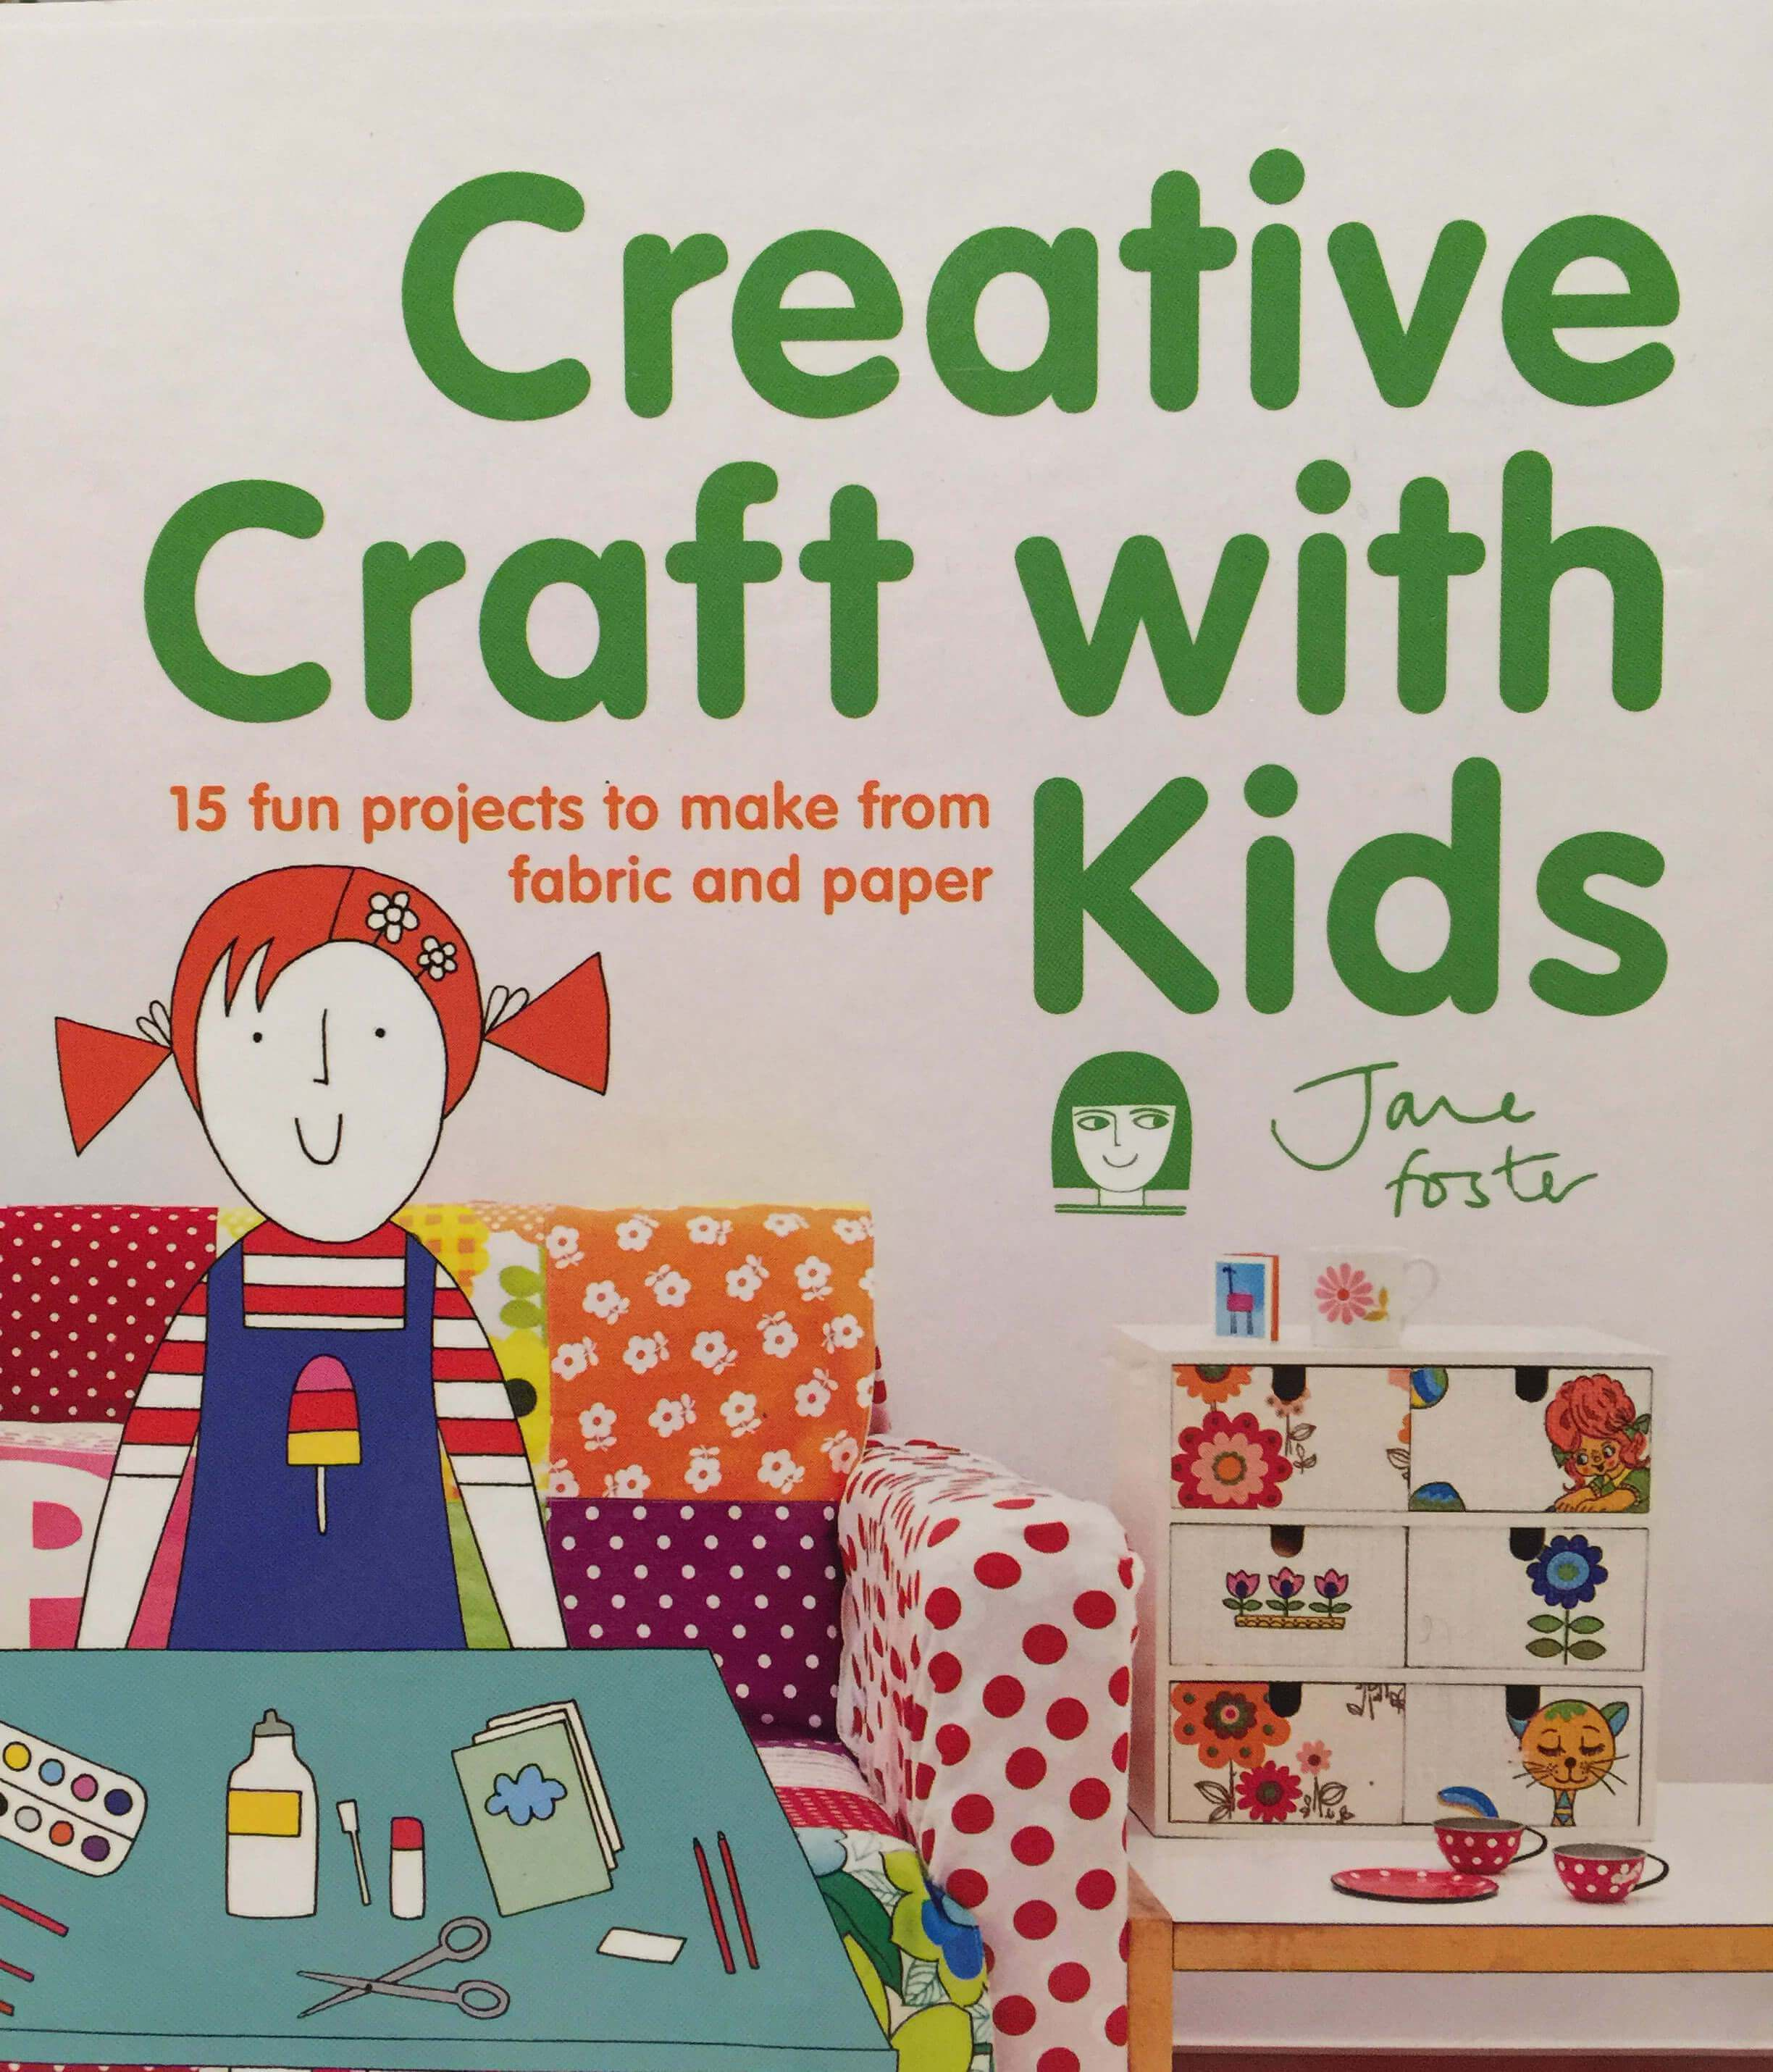 creative craft with kids jane foster